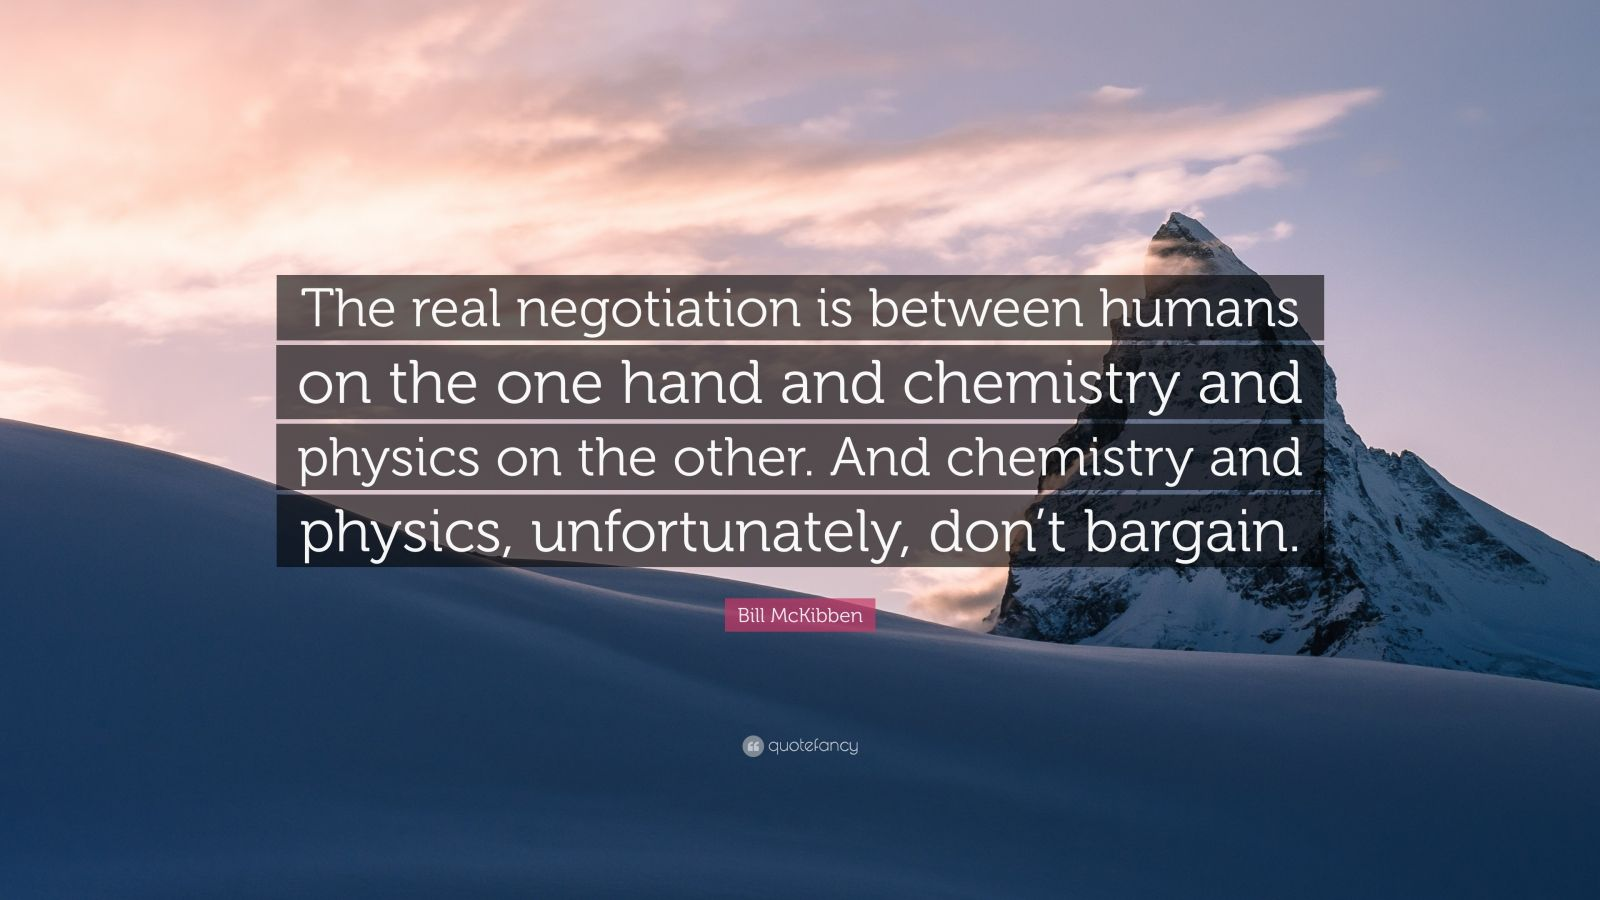 """Bill McKibben Quote: """"The real negotiation is between humans on the one hand and chemistry and physics on the other. And chemistry and physics, unfortunately, don't bargain."""""""